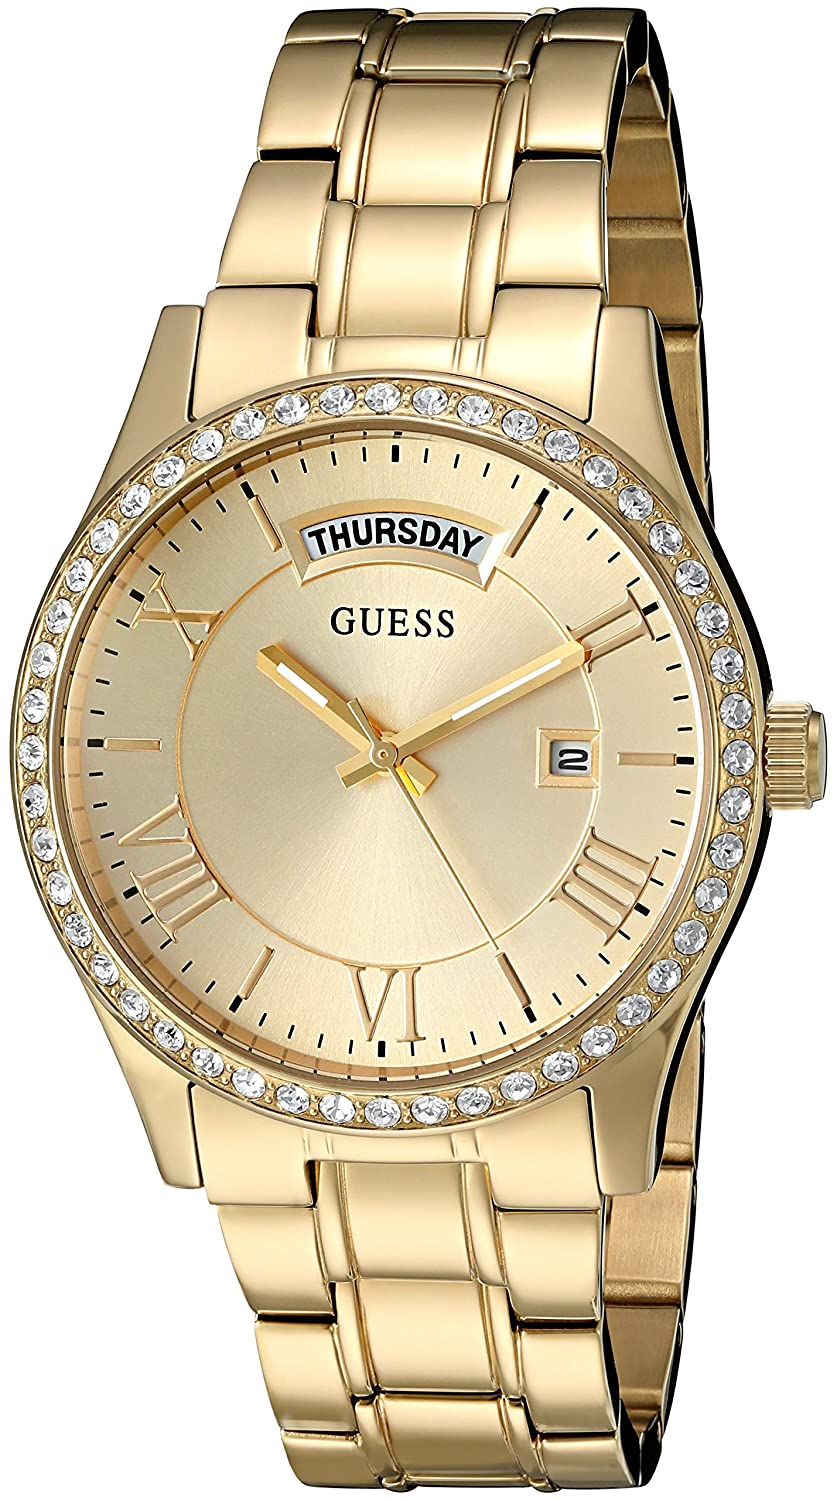 GUESS Women's U0764L2 Dressy Gold-Tone Stainless Steel Multi-Function Watch with Day & Date Dial and Pilot Buckle B0194Z8GV6ゴールドトーン